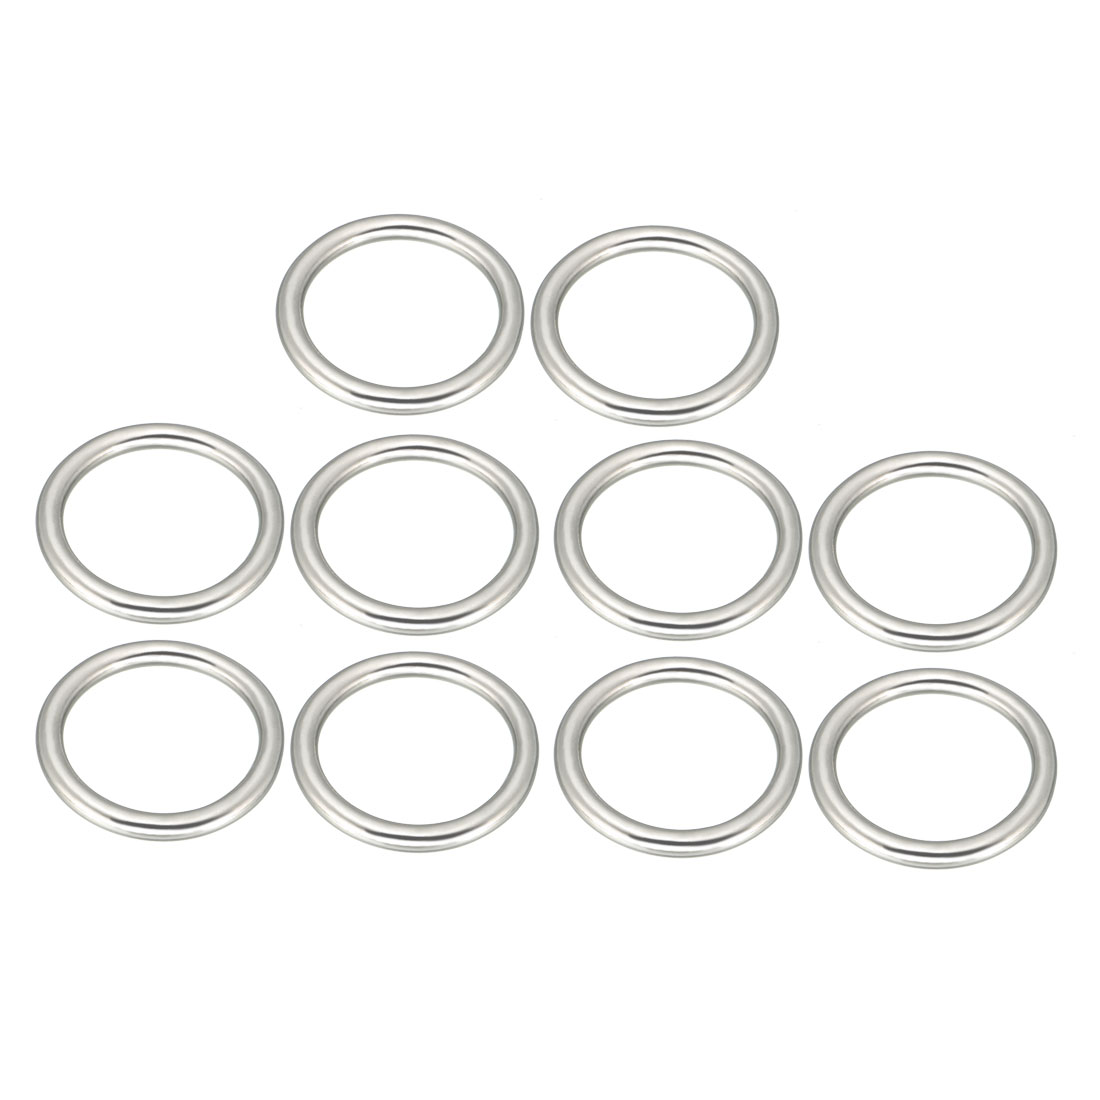 Uxcell 10 Pcs Multi-Purpose Metal O Ring Buckle Welded 26mm X 20mm X 3mm For Hardware Bags Ring Hand DIY Accessories